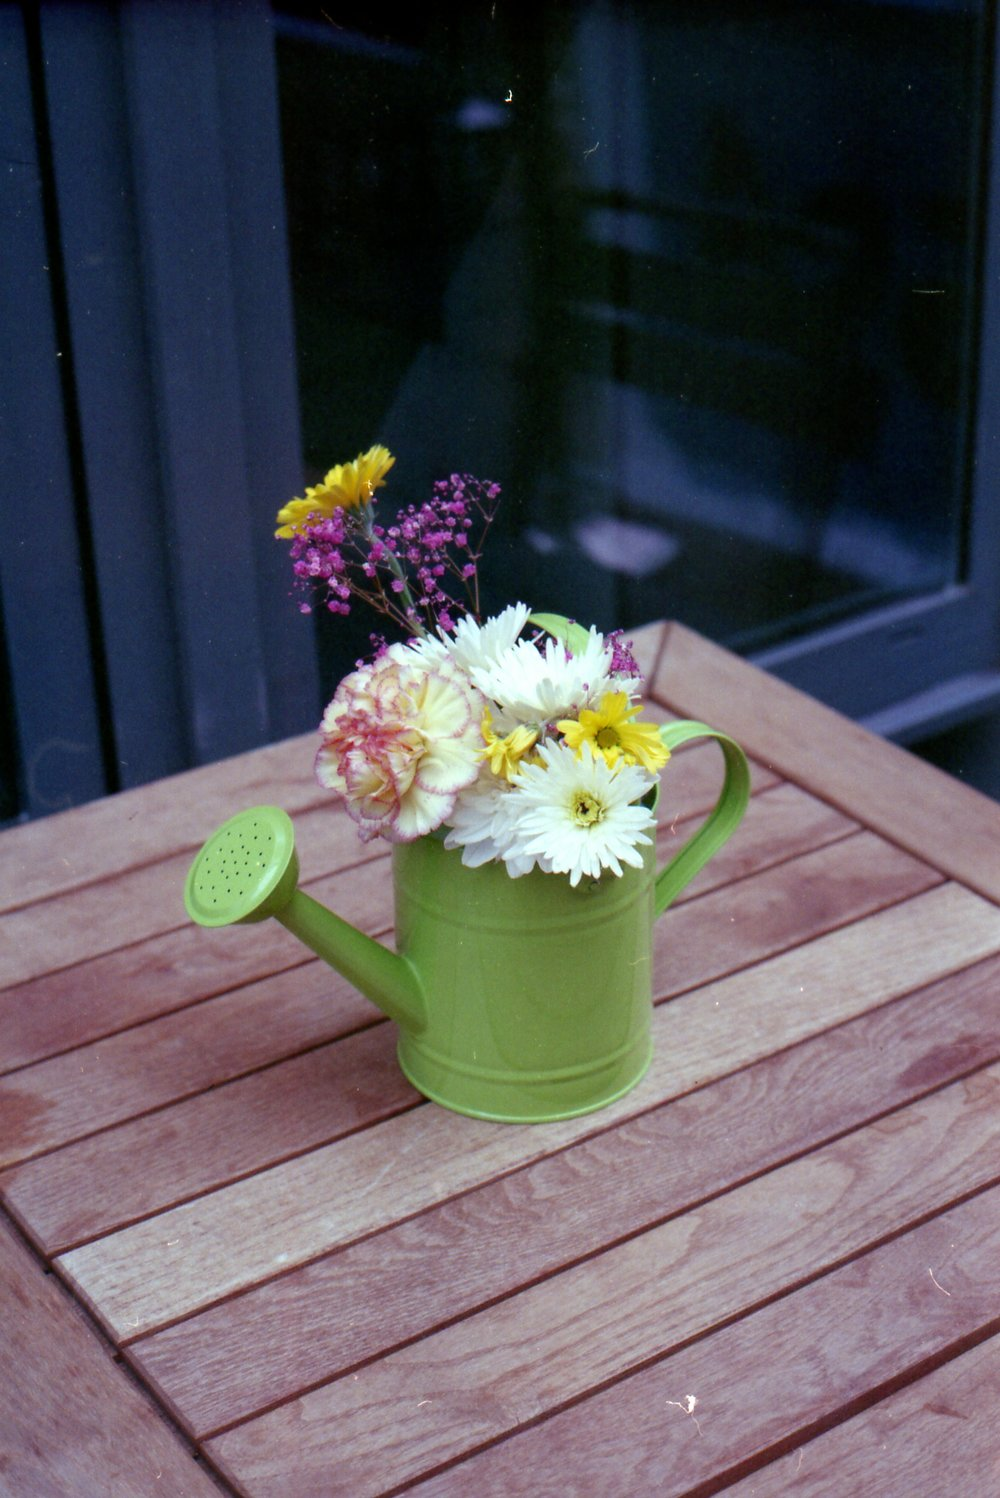 271/366 - Flowers in a watering can is always cute!